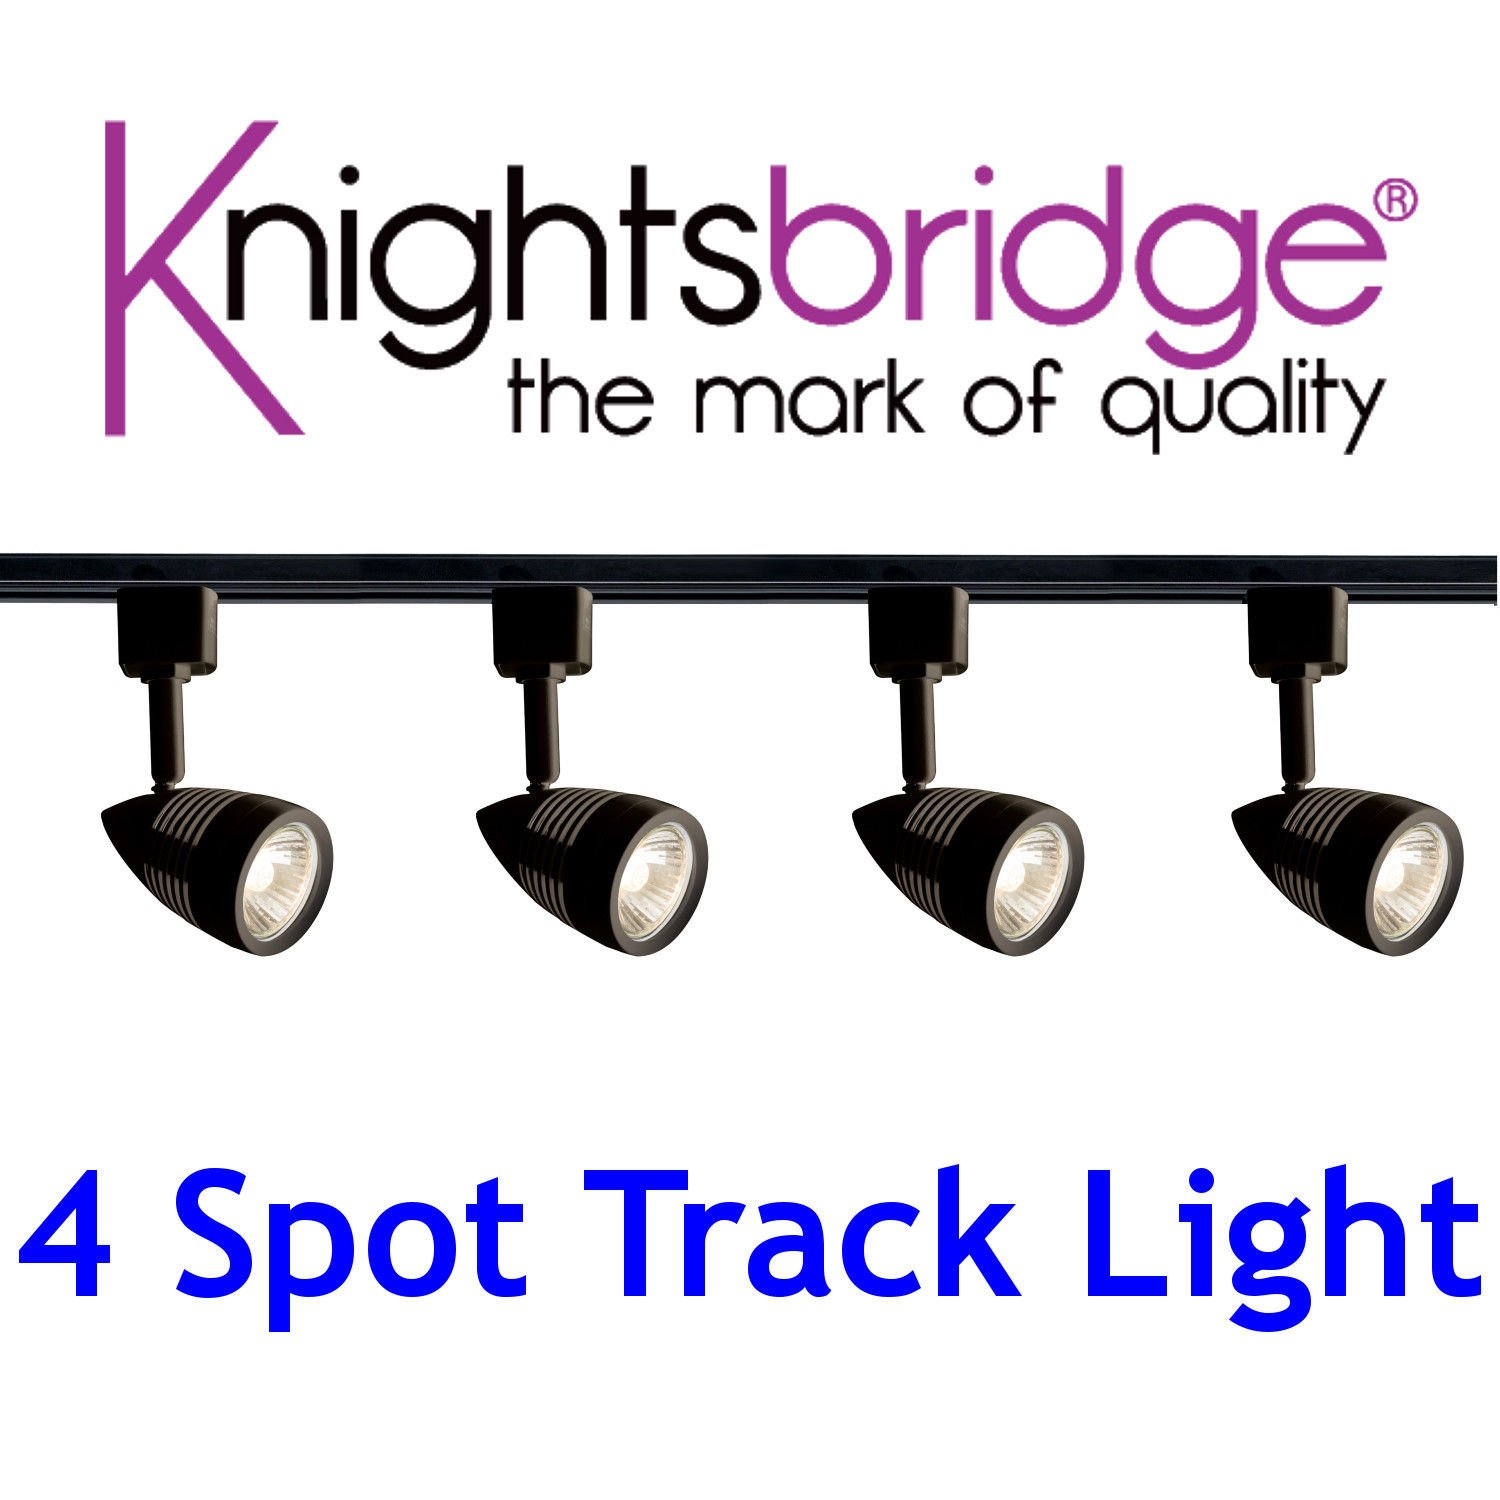 Knightsbridge Black Track Lighting Set Kit 4x Spotlight GU10 LED Spot Light 2m Shop Office Display Exibition Fitting [Energy Class A+]